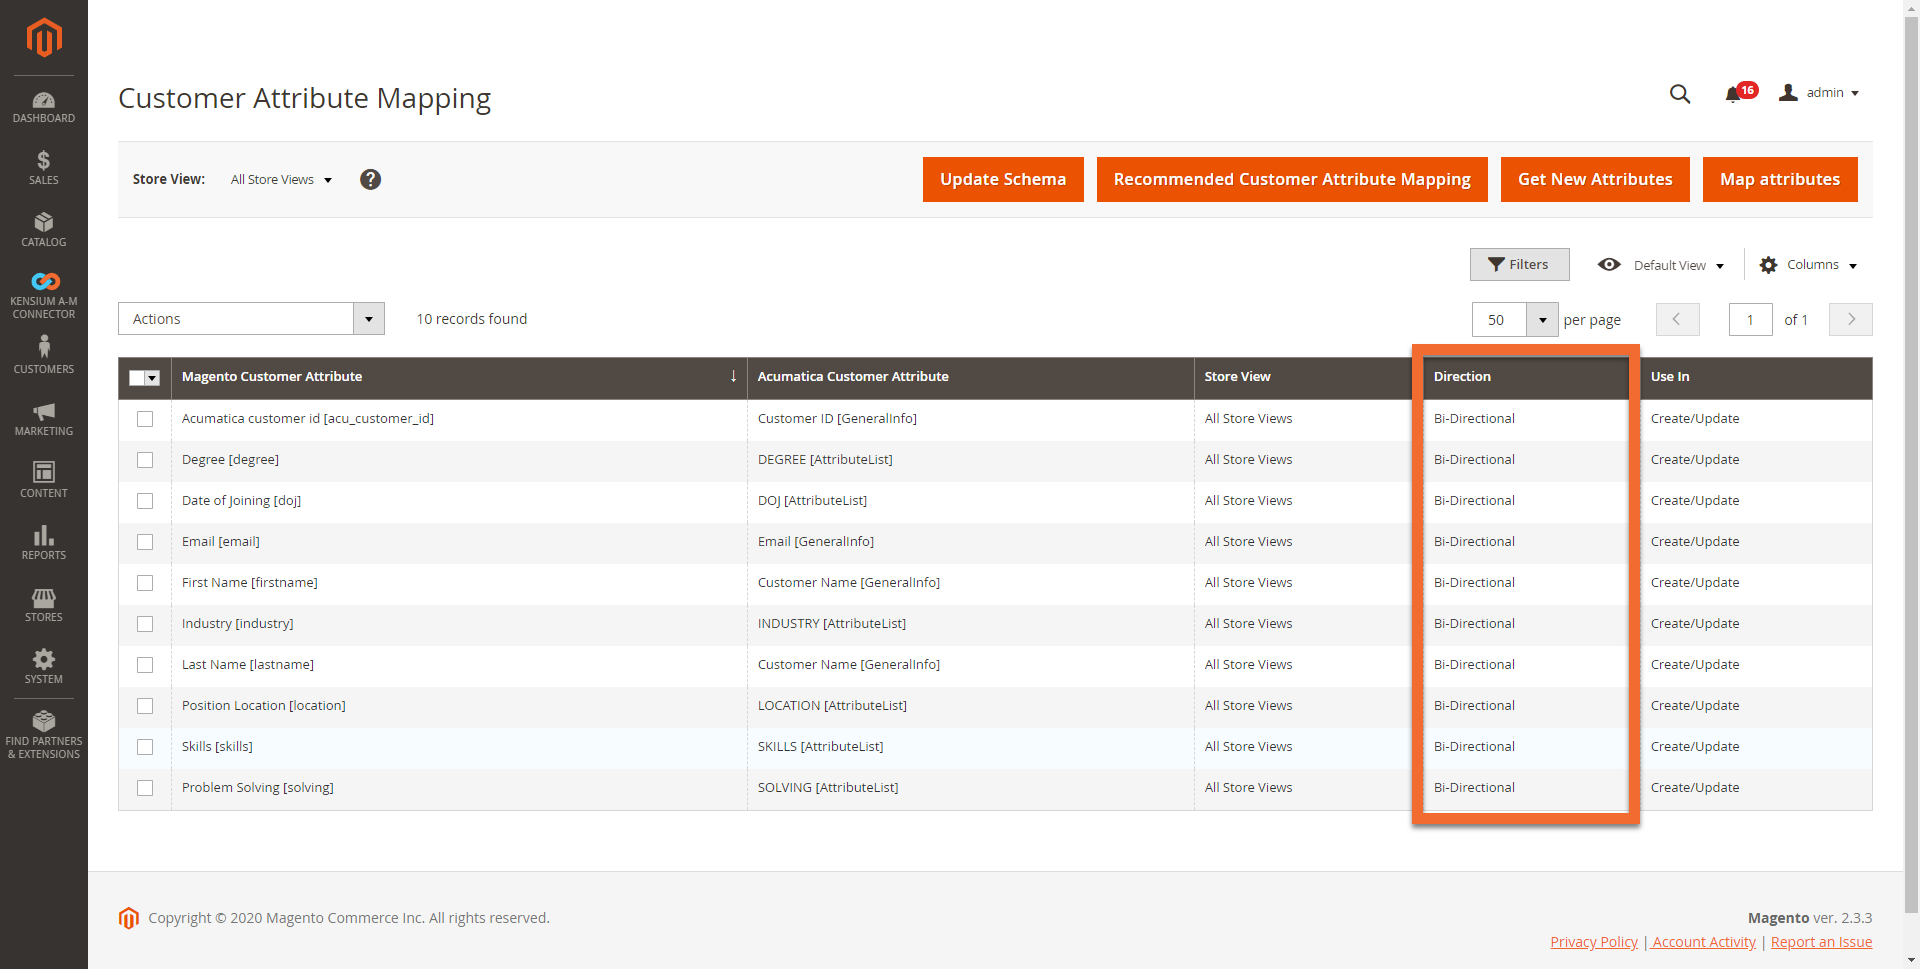 Customer Attribute Mapping Screen in Magento